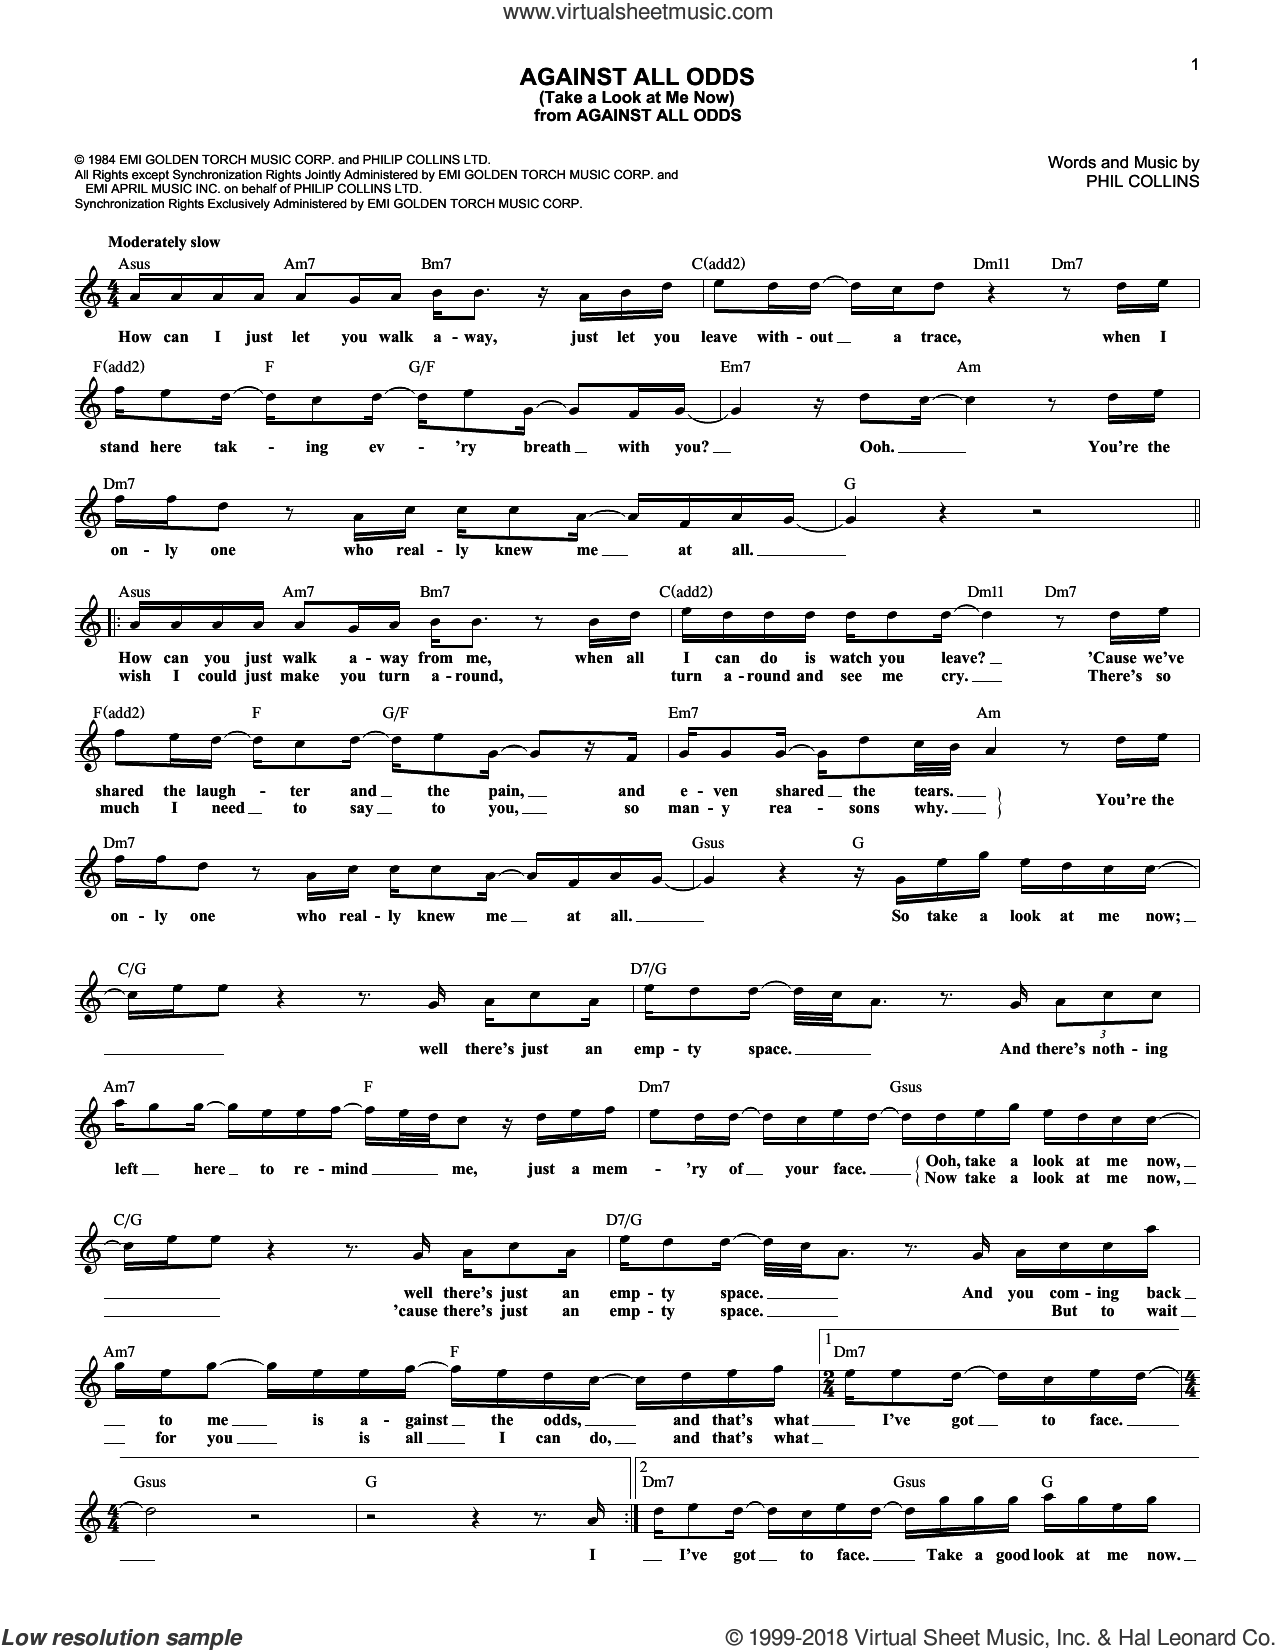 Against All Odds (Take A Look At Me Now) sheet music for voice and other instruments (fake book) by Phil Collins